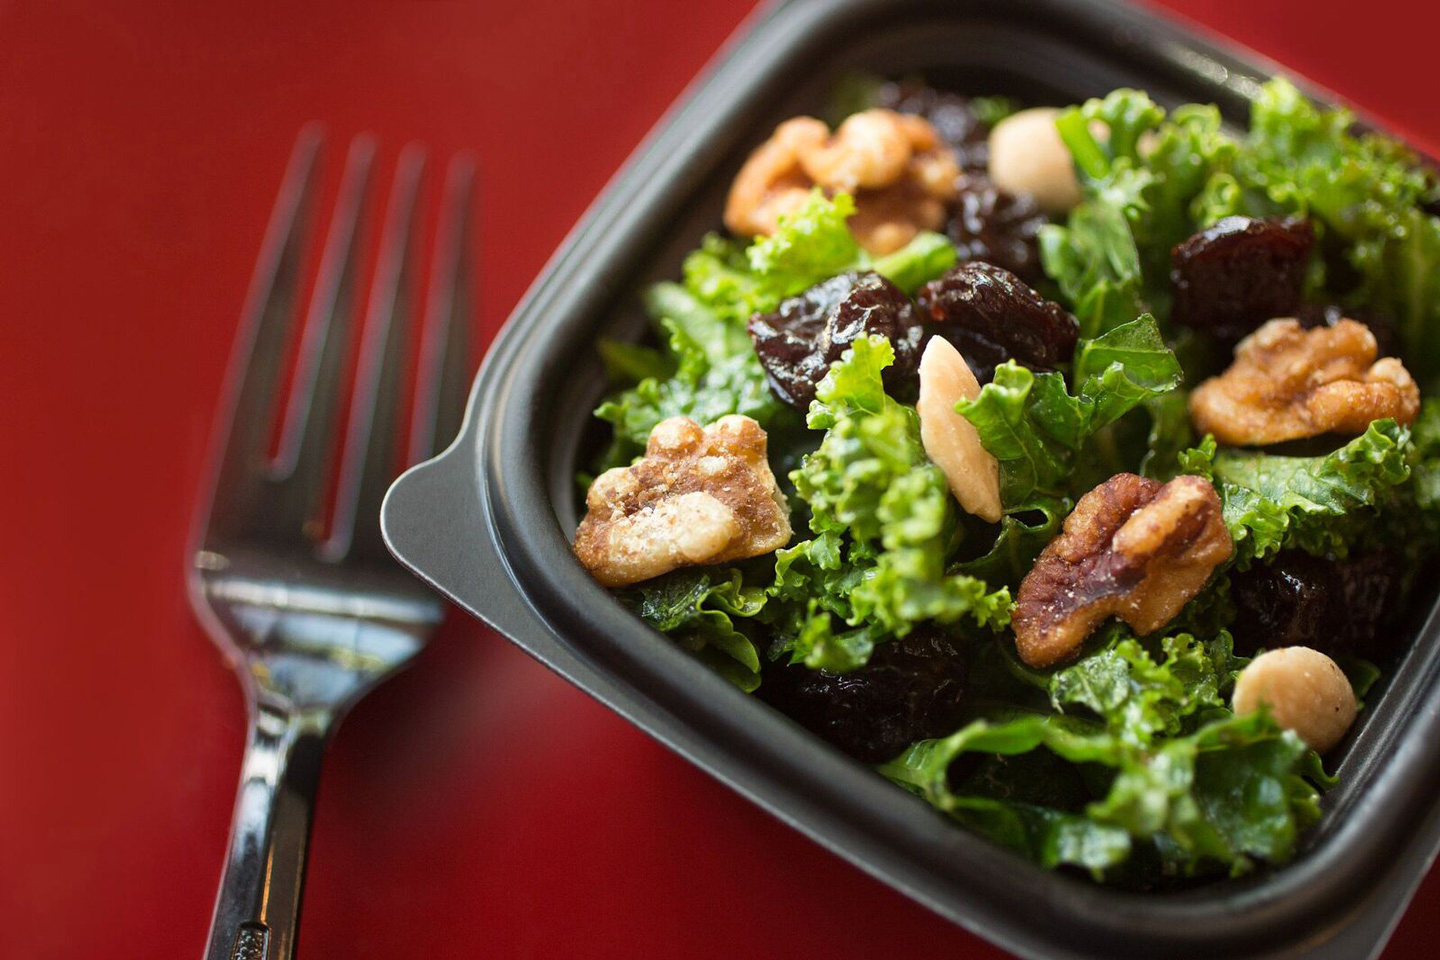 Calories in Chick-fil-A Superfood Salad and Nutrition Facts